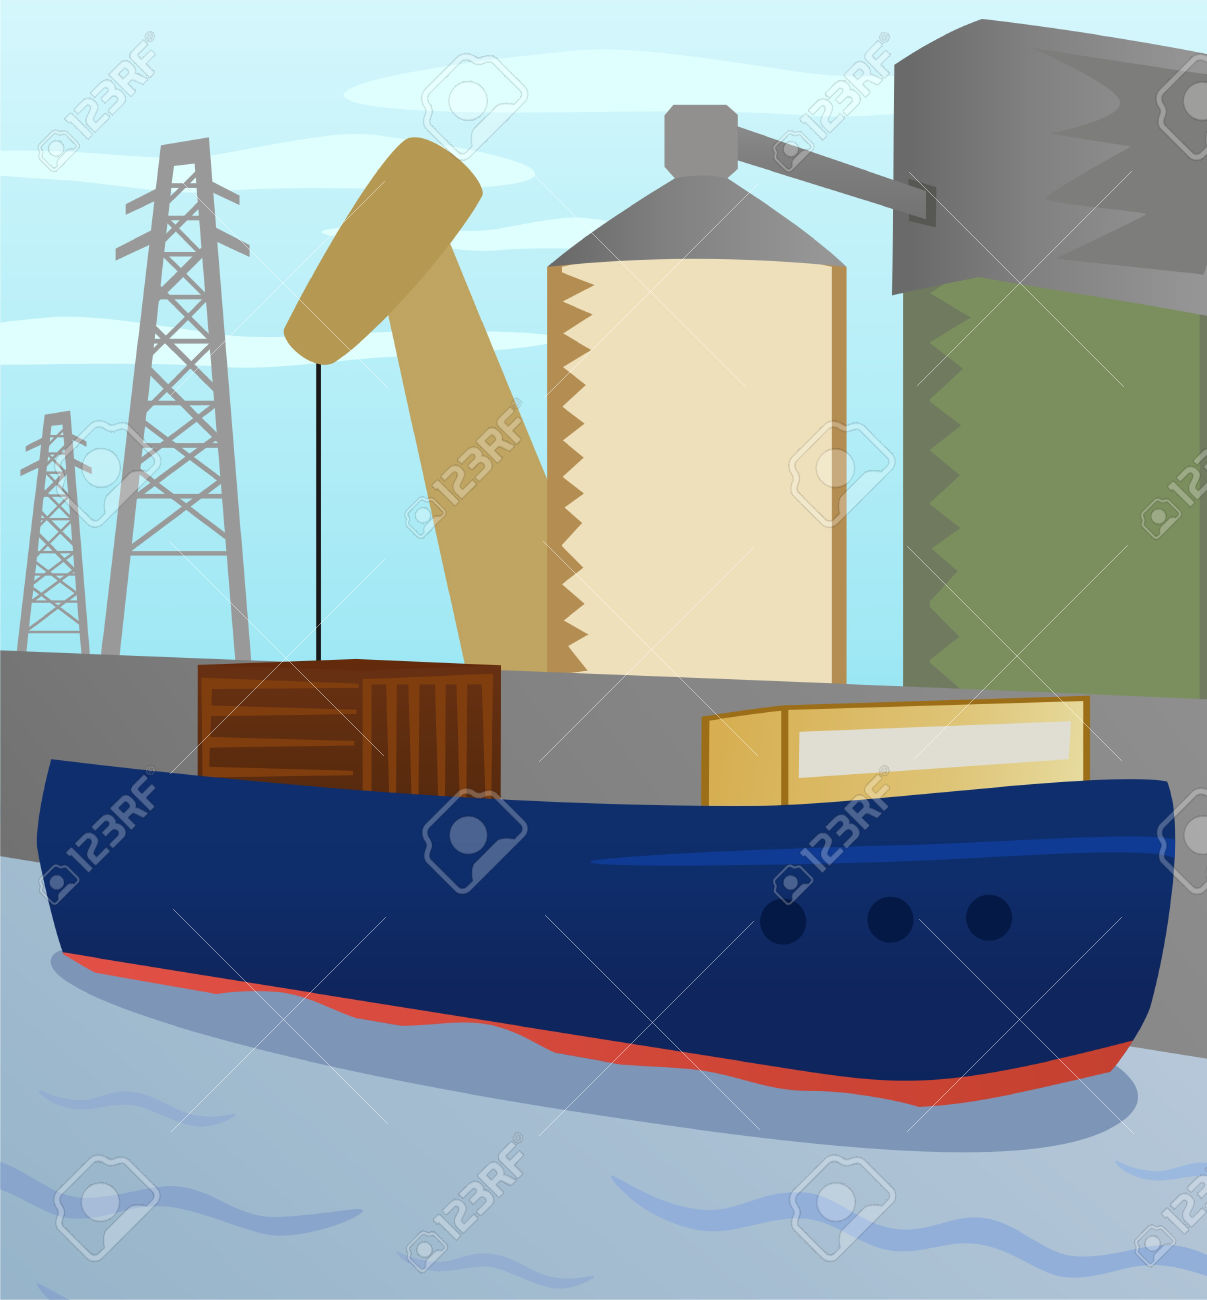 Illustration Cargo Boat On Background Of Port Area Royalty Free.